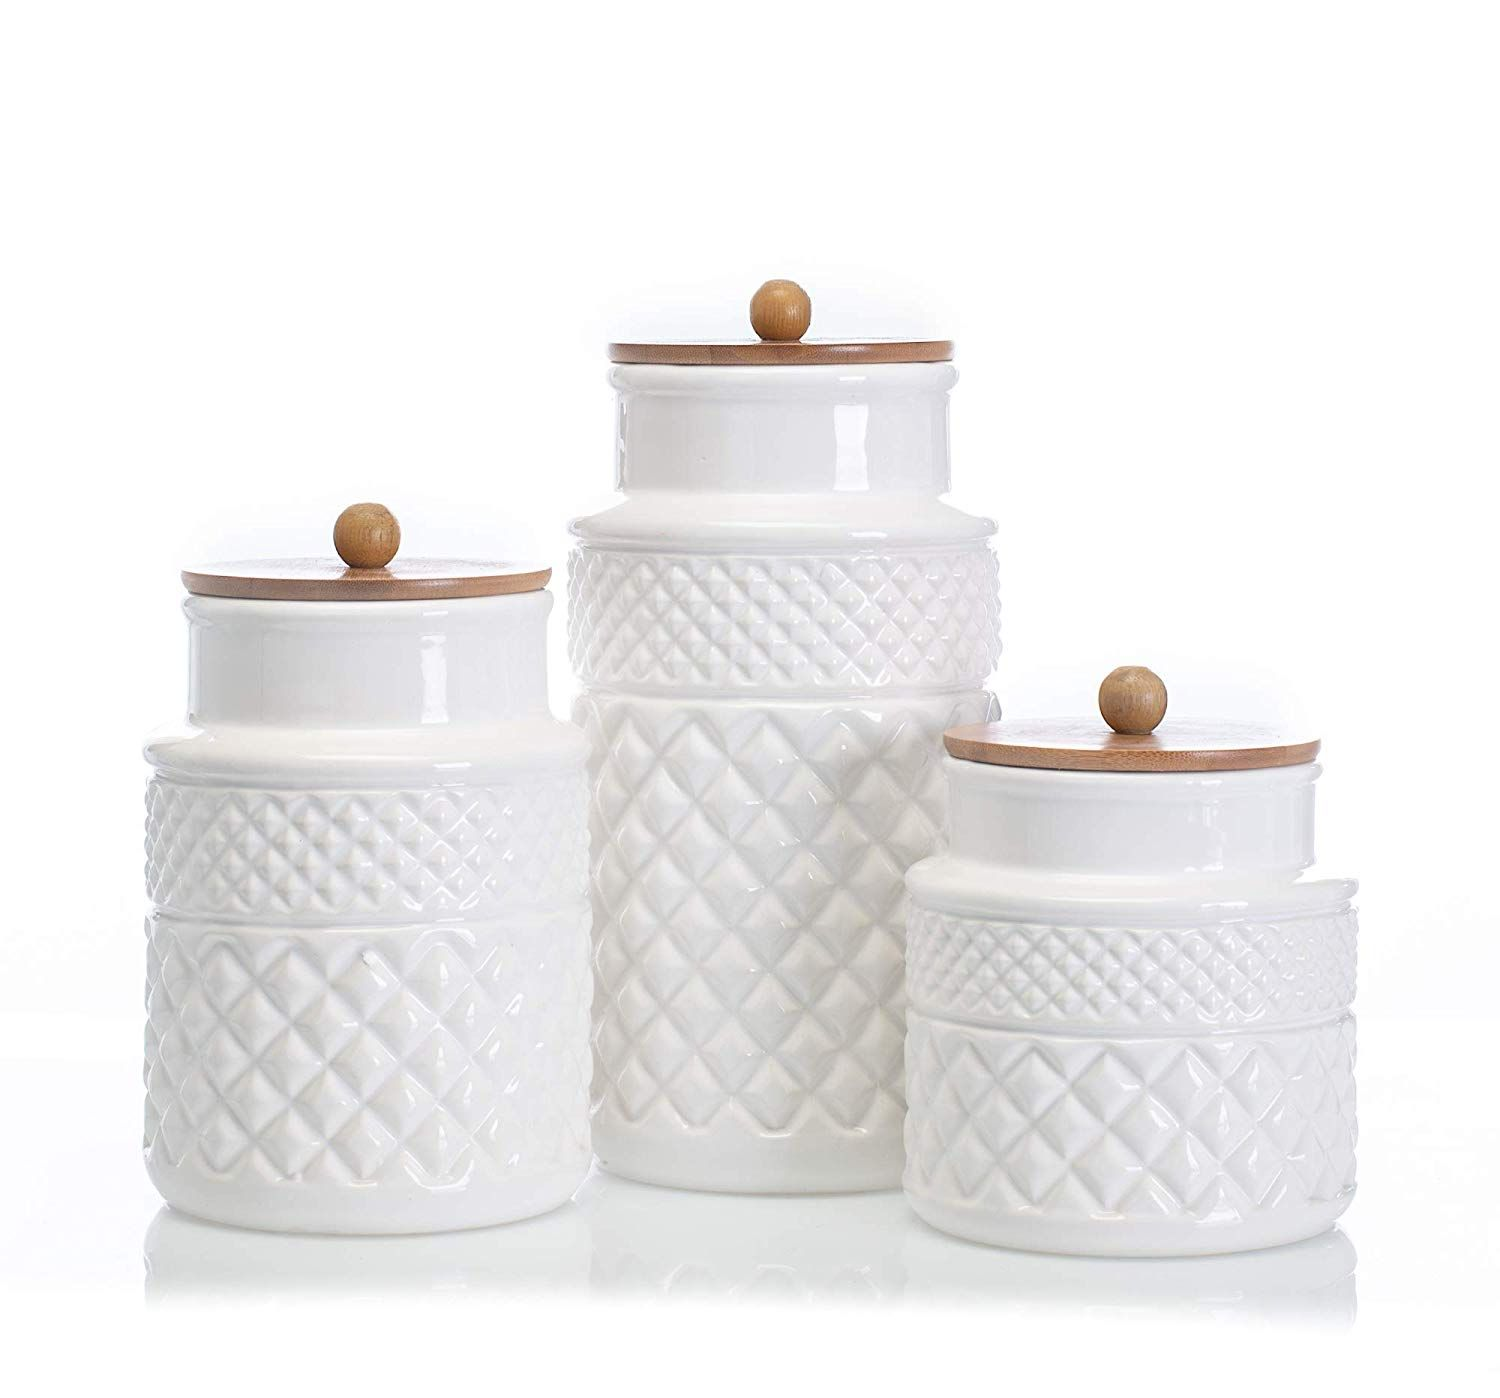 Faceted Classic White 11 X 5 Glossy Ceramic Storage Canisters Set Of 3 More Info Could Be Found At The Image Canister Sets Storage Canisters Food Canisters